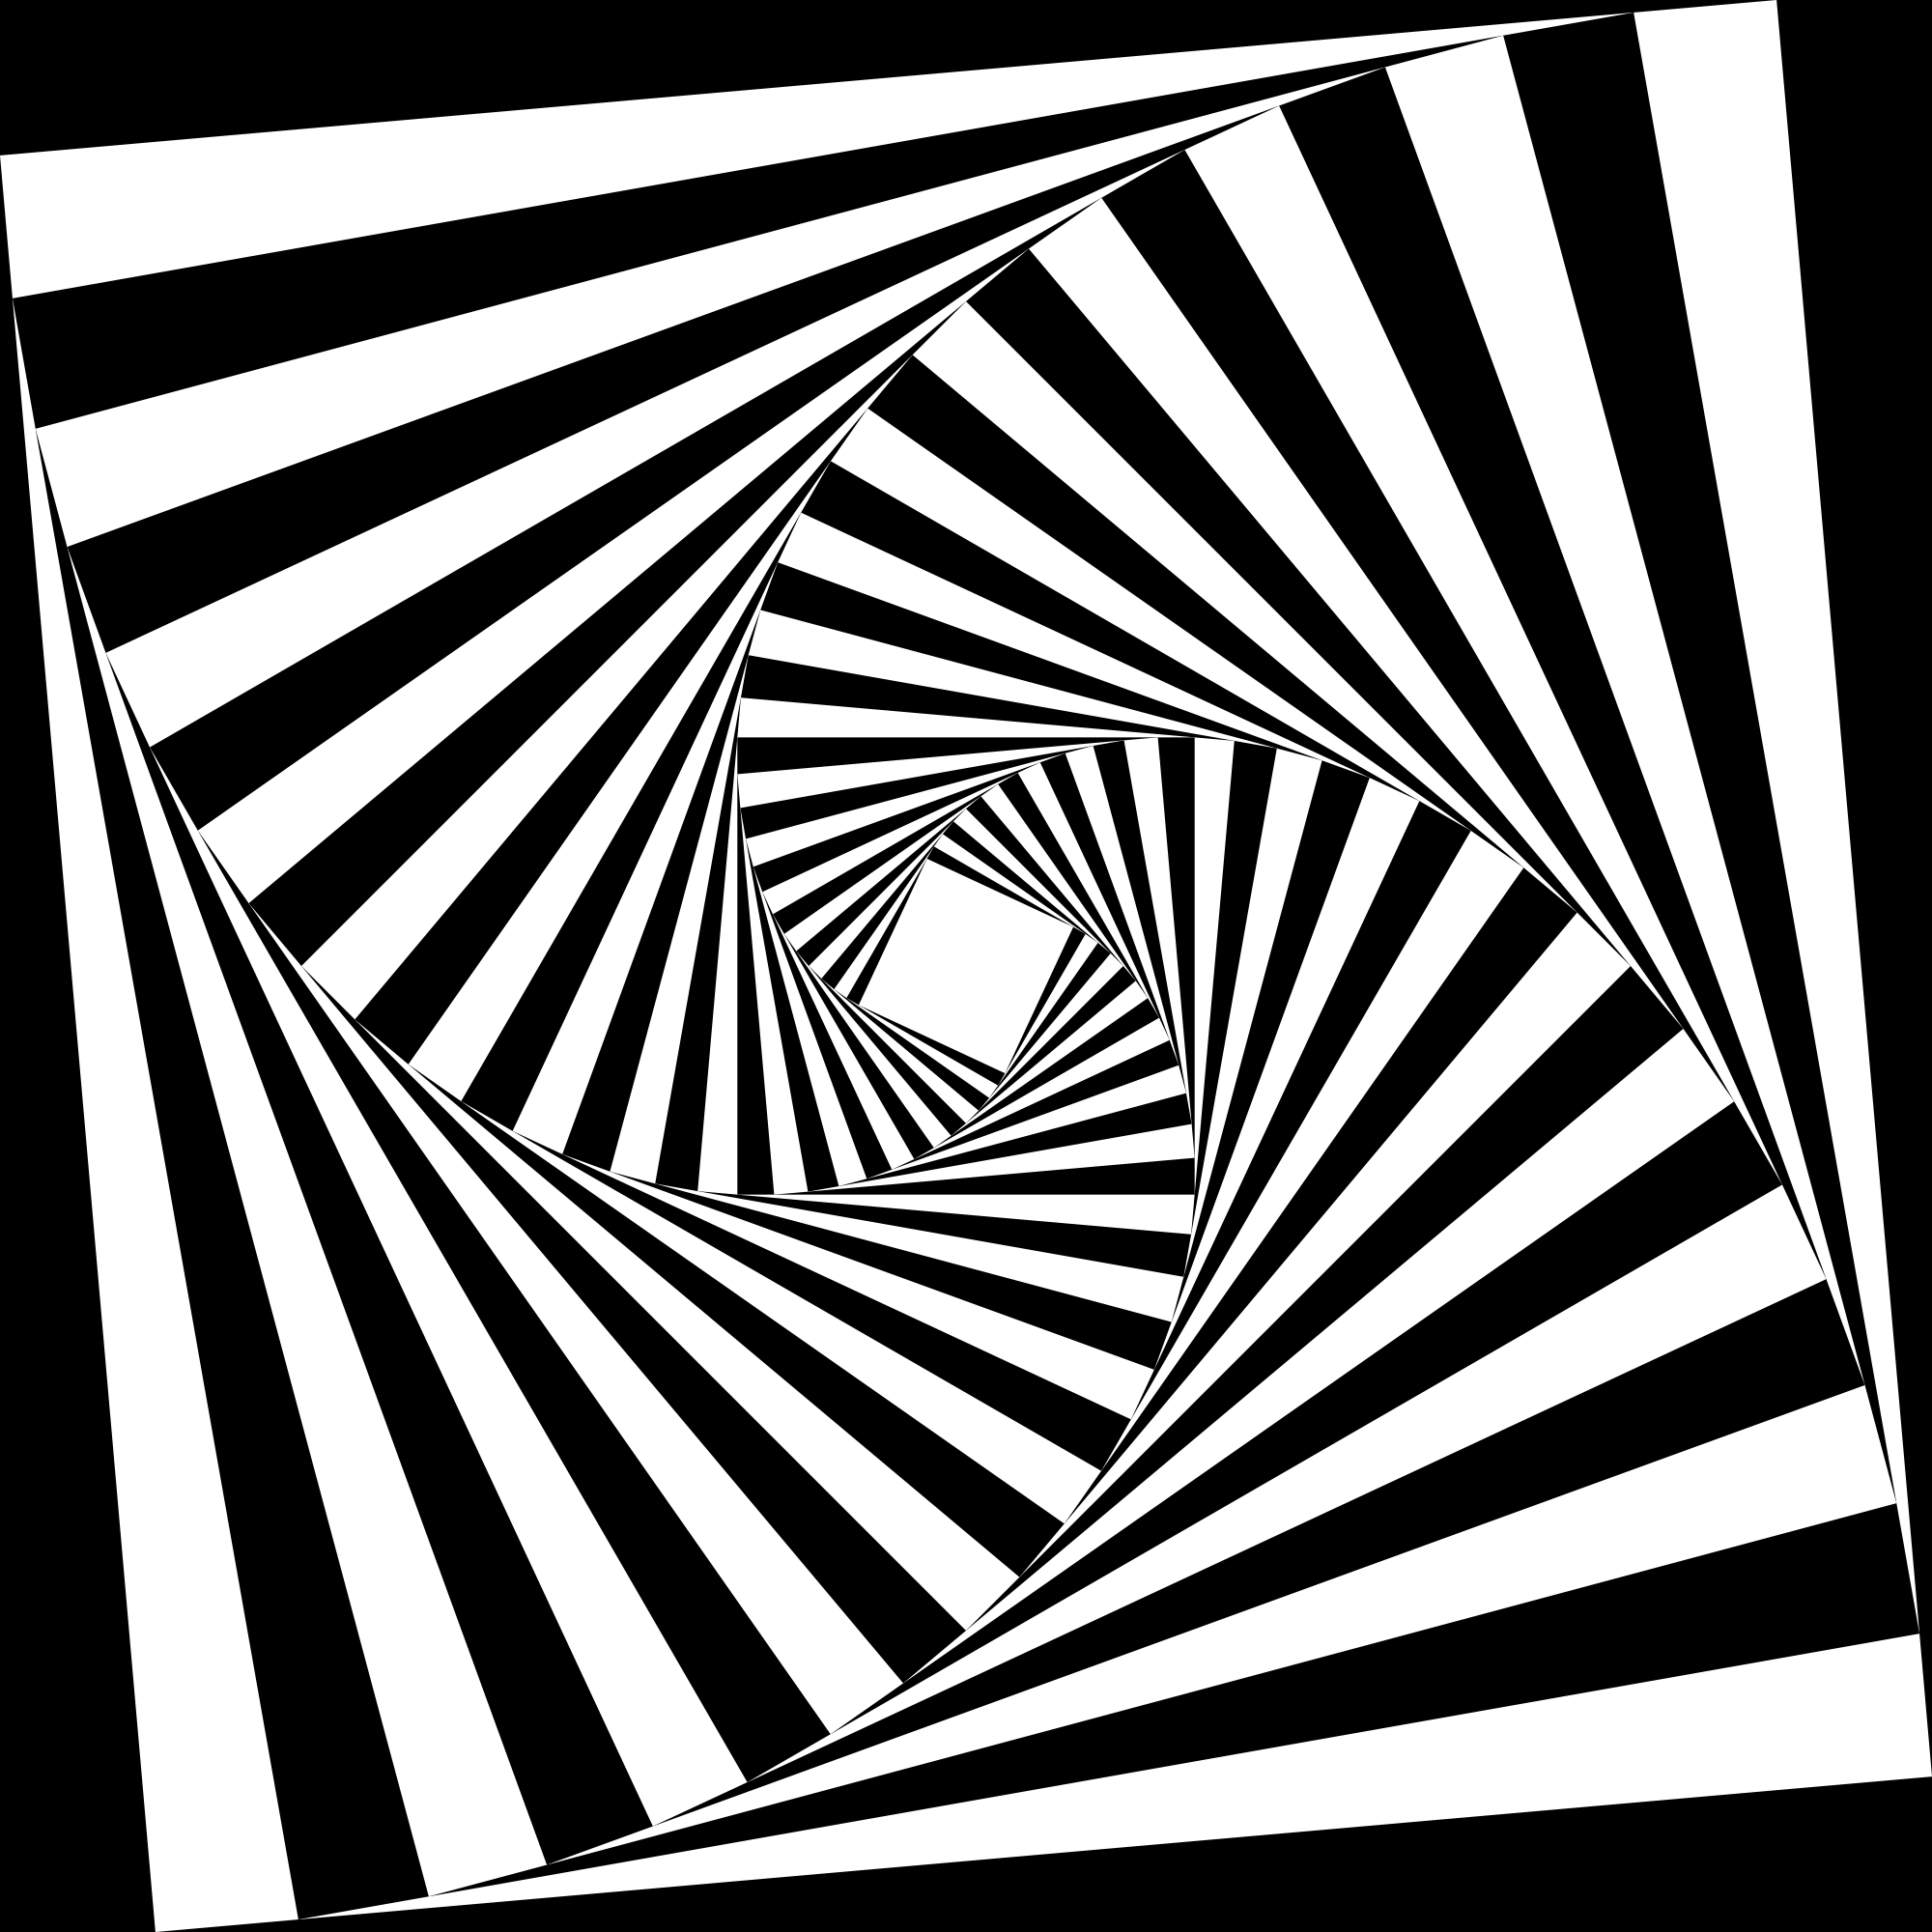 Que Es El Arte Cinetico Wikipedia File Op Art 4 Sided Spiral Tunnel 6 Svg Wikimedia Commons Op